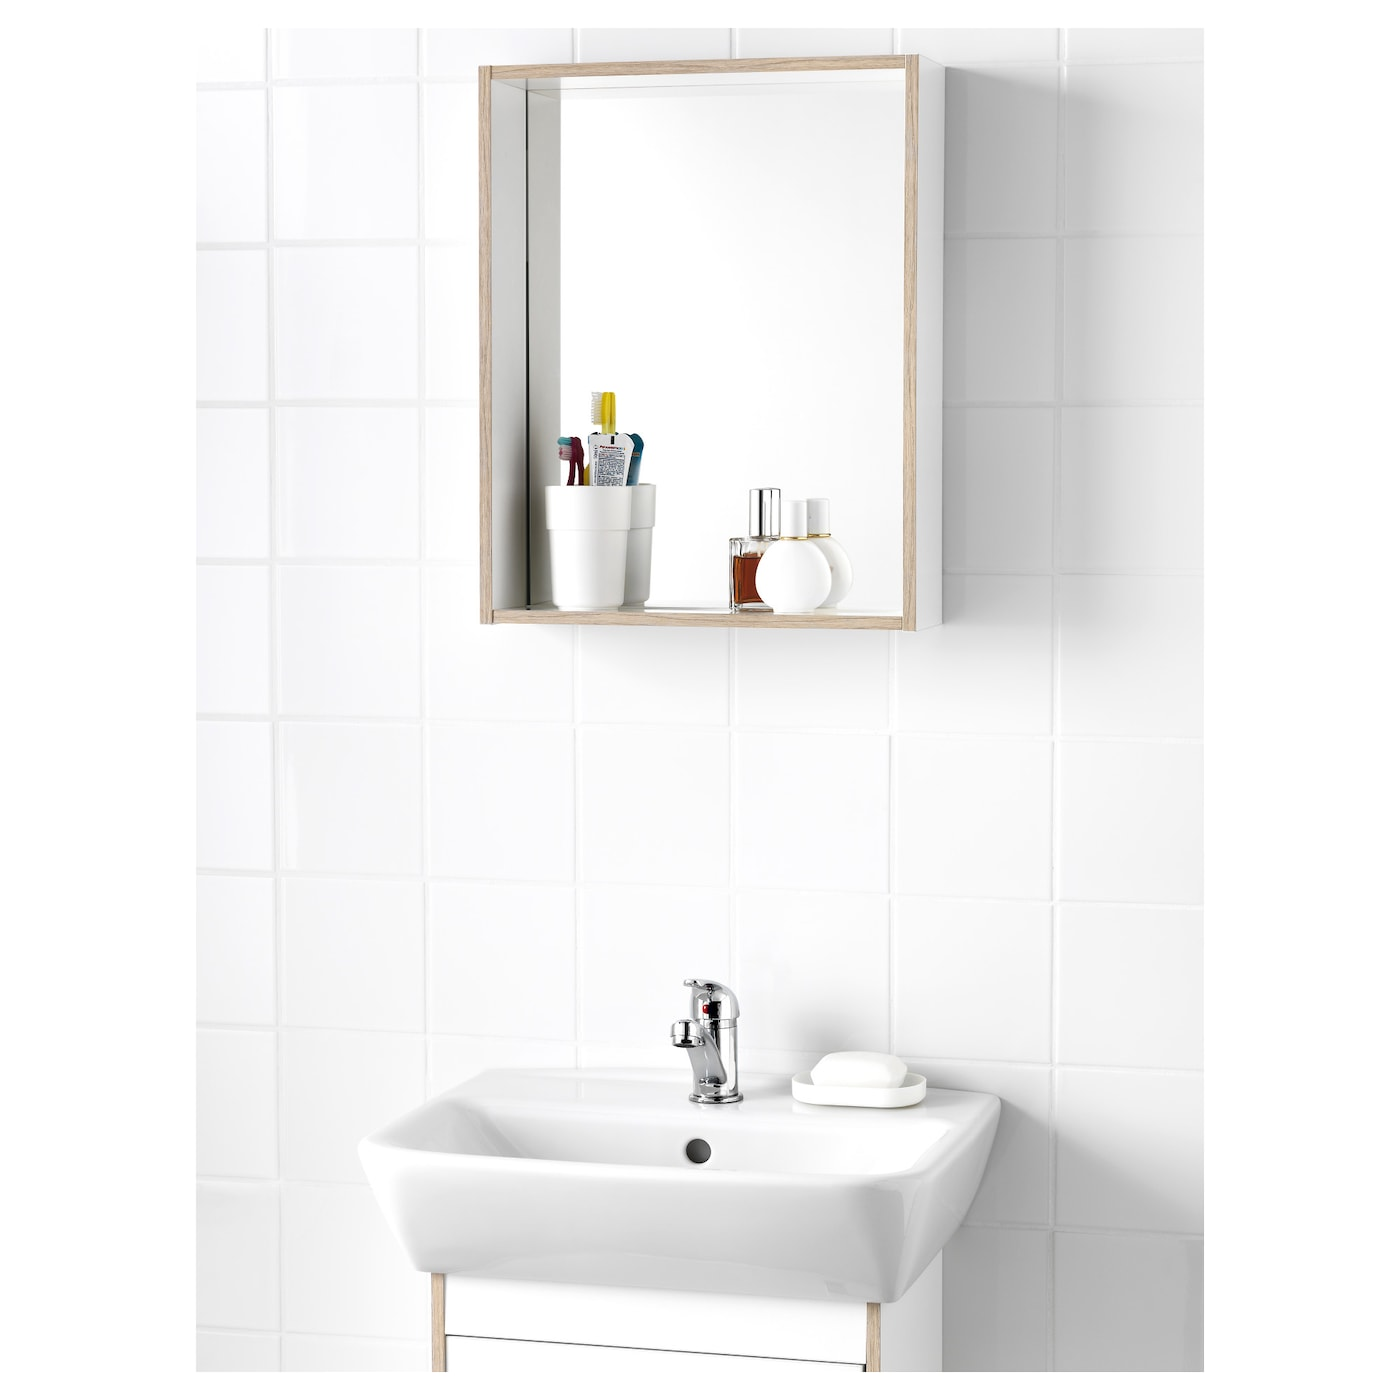 Tyngen mirror with shelf white ash effect 40x12x50 cm ikea - Ikea portaoggetti ...